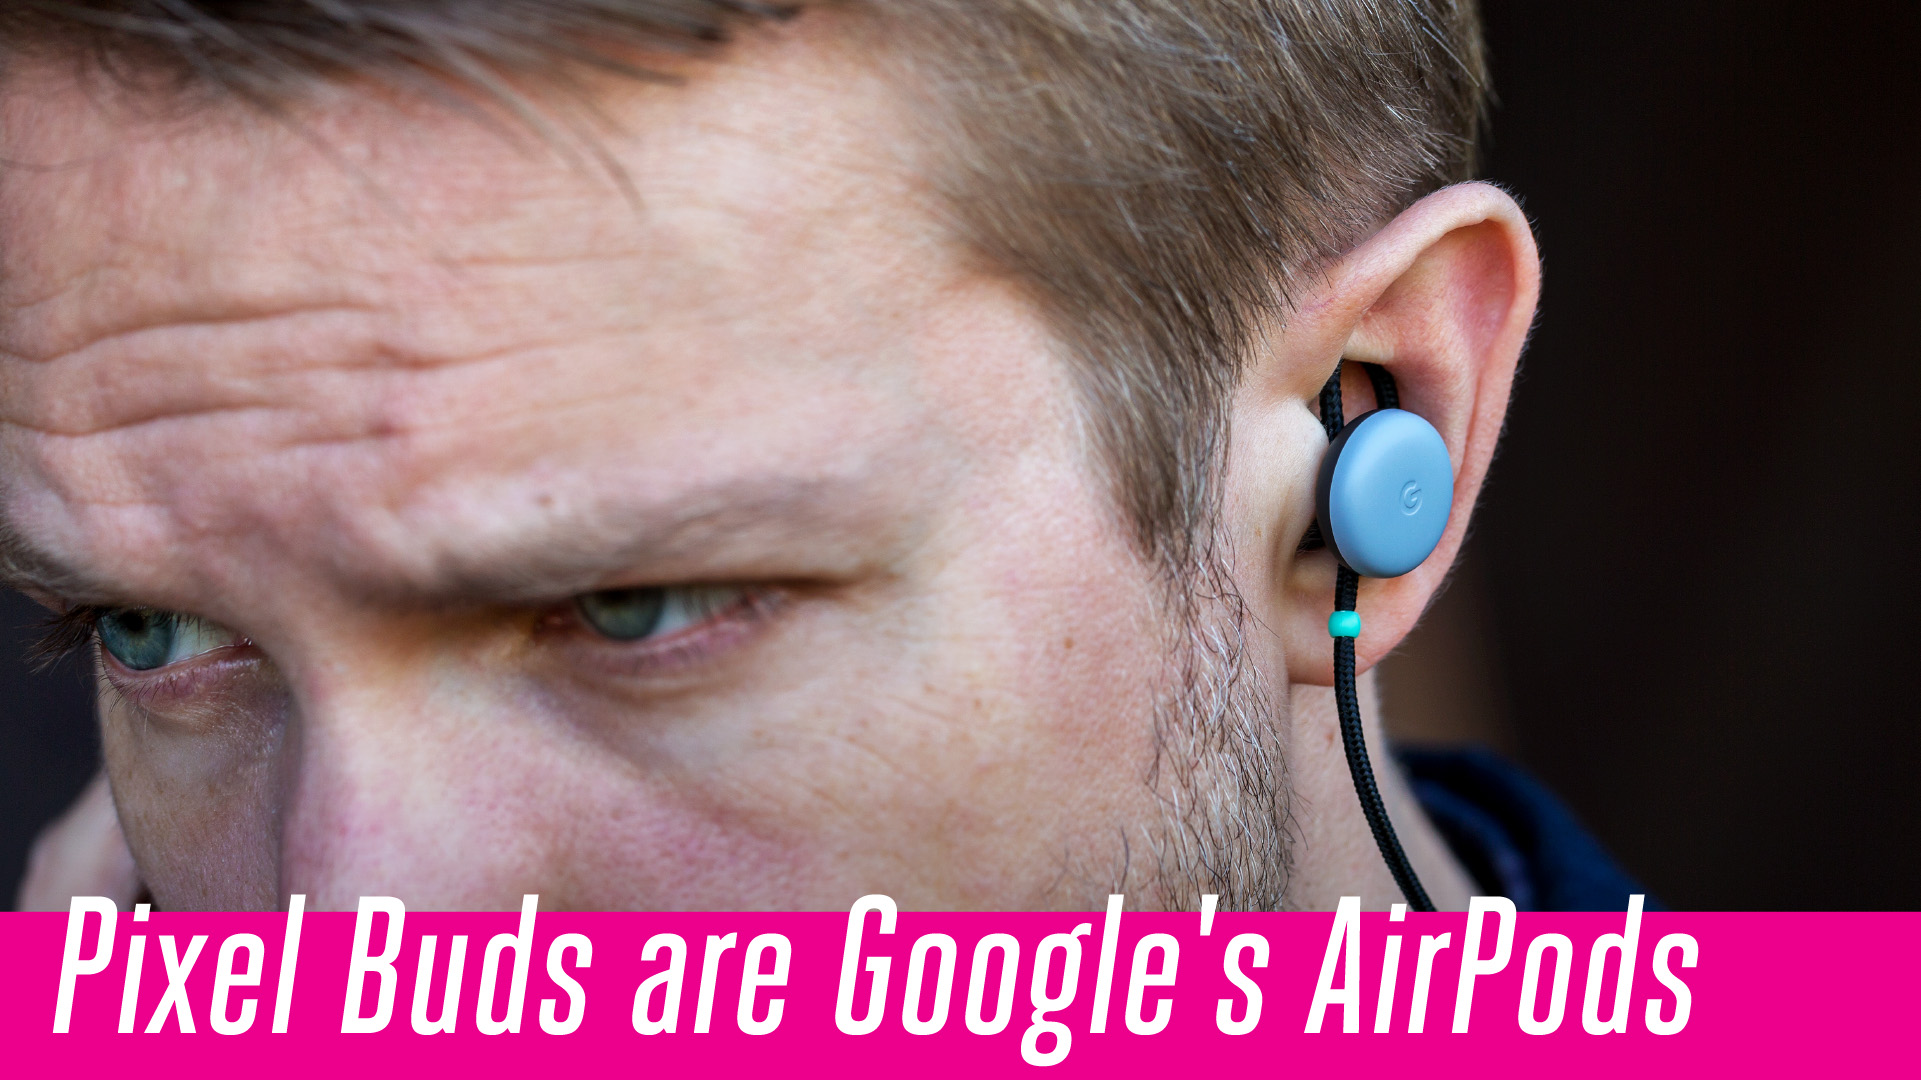 Pixel Buds are Google's AirPods